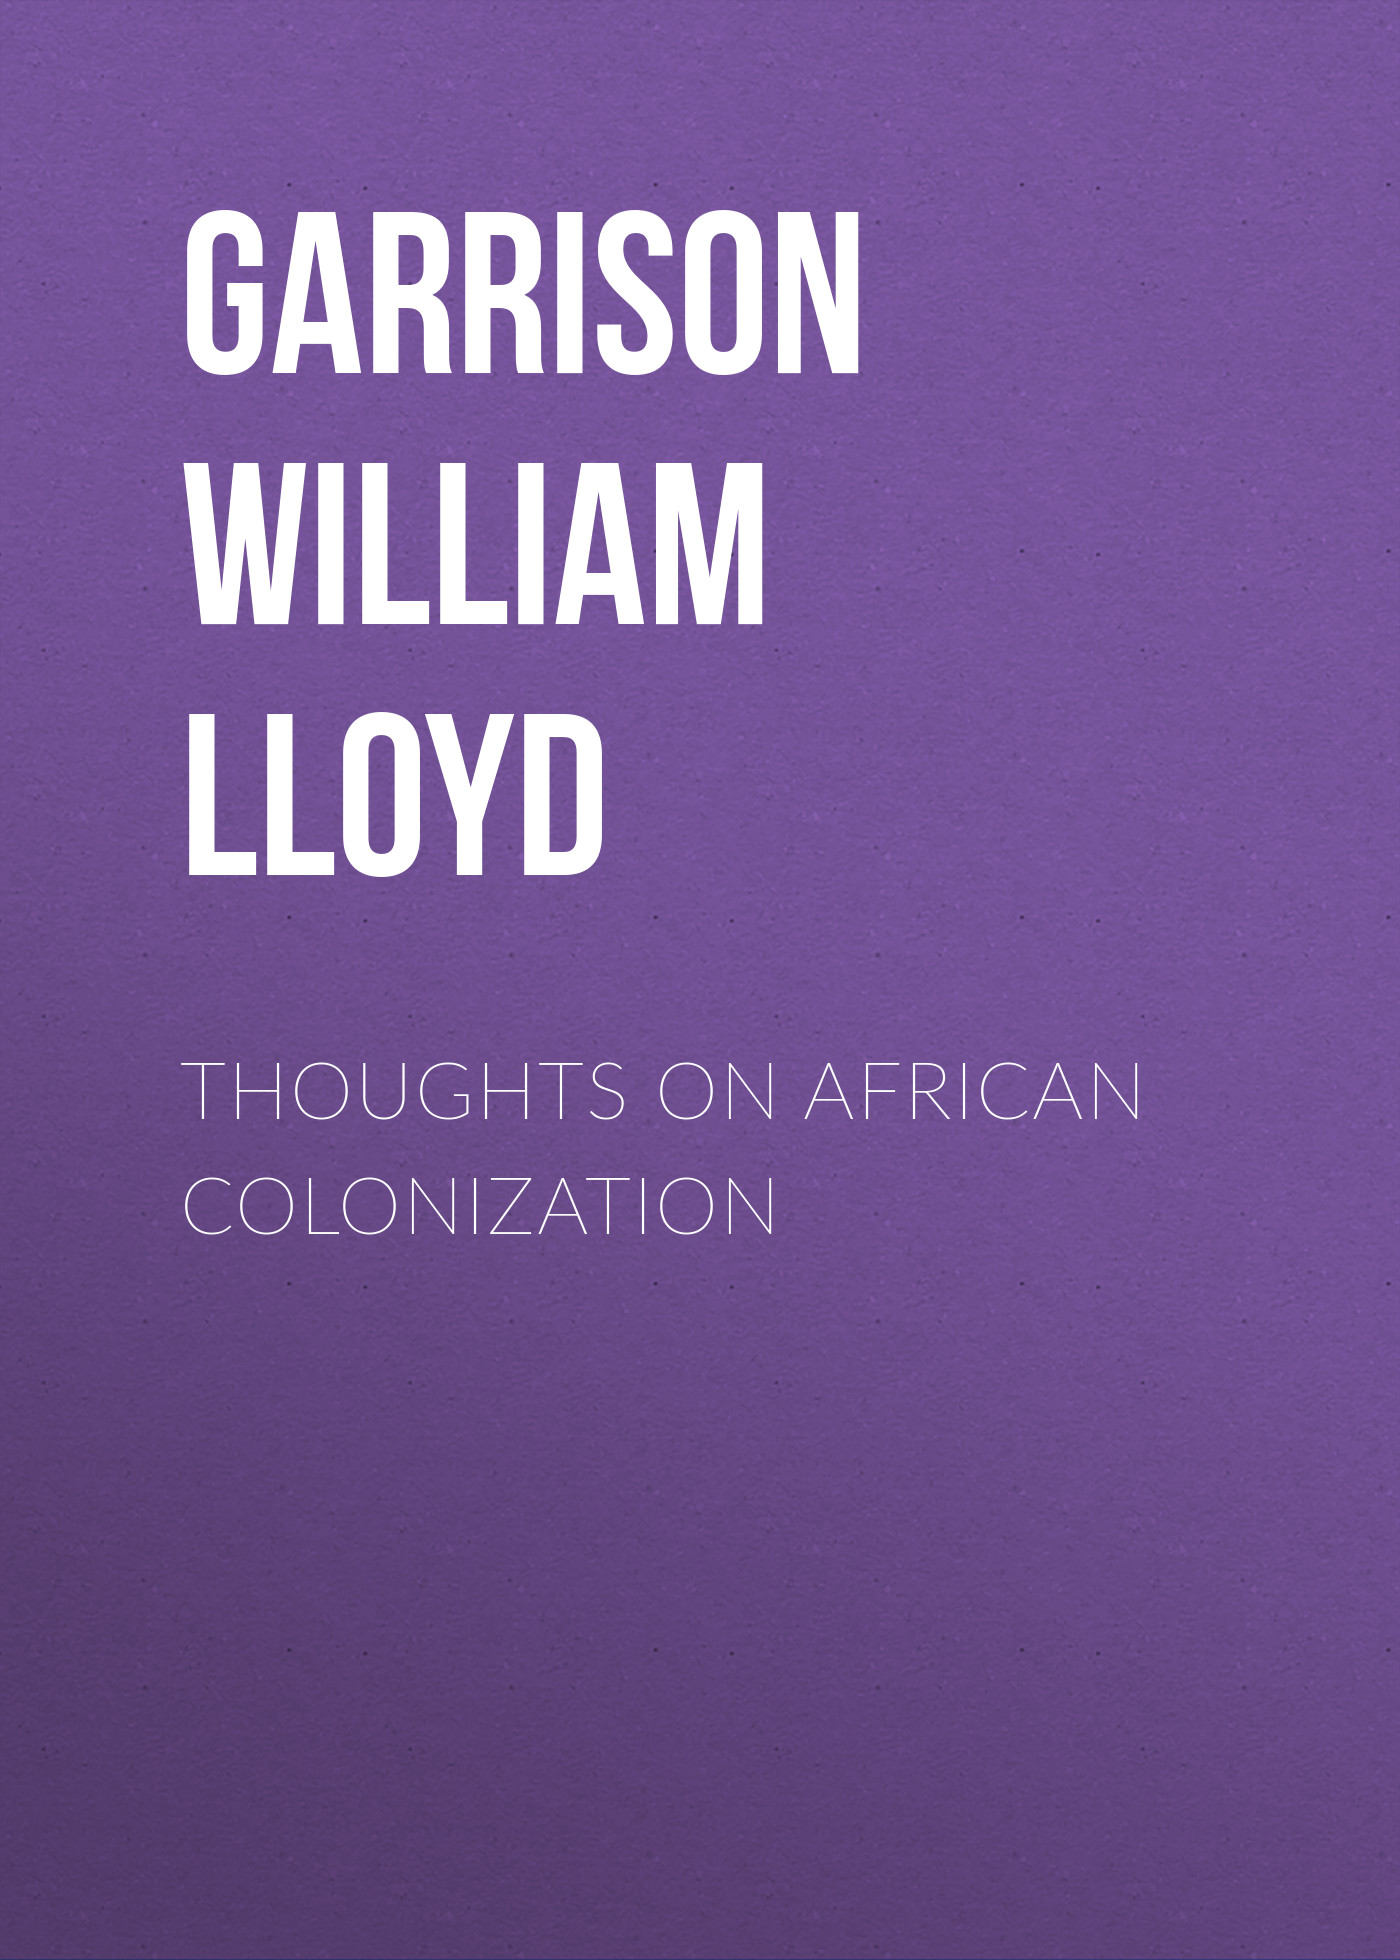 Garrison William Lloyd Thoughts on African Colonization